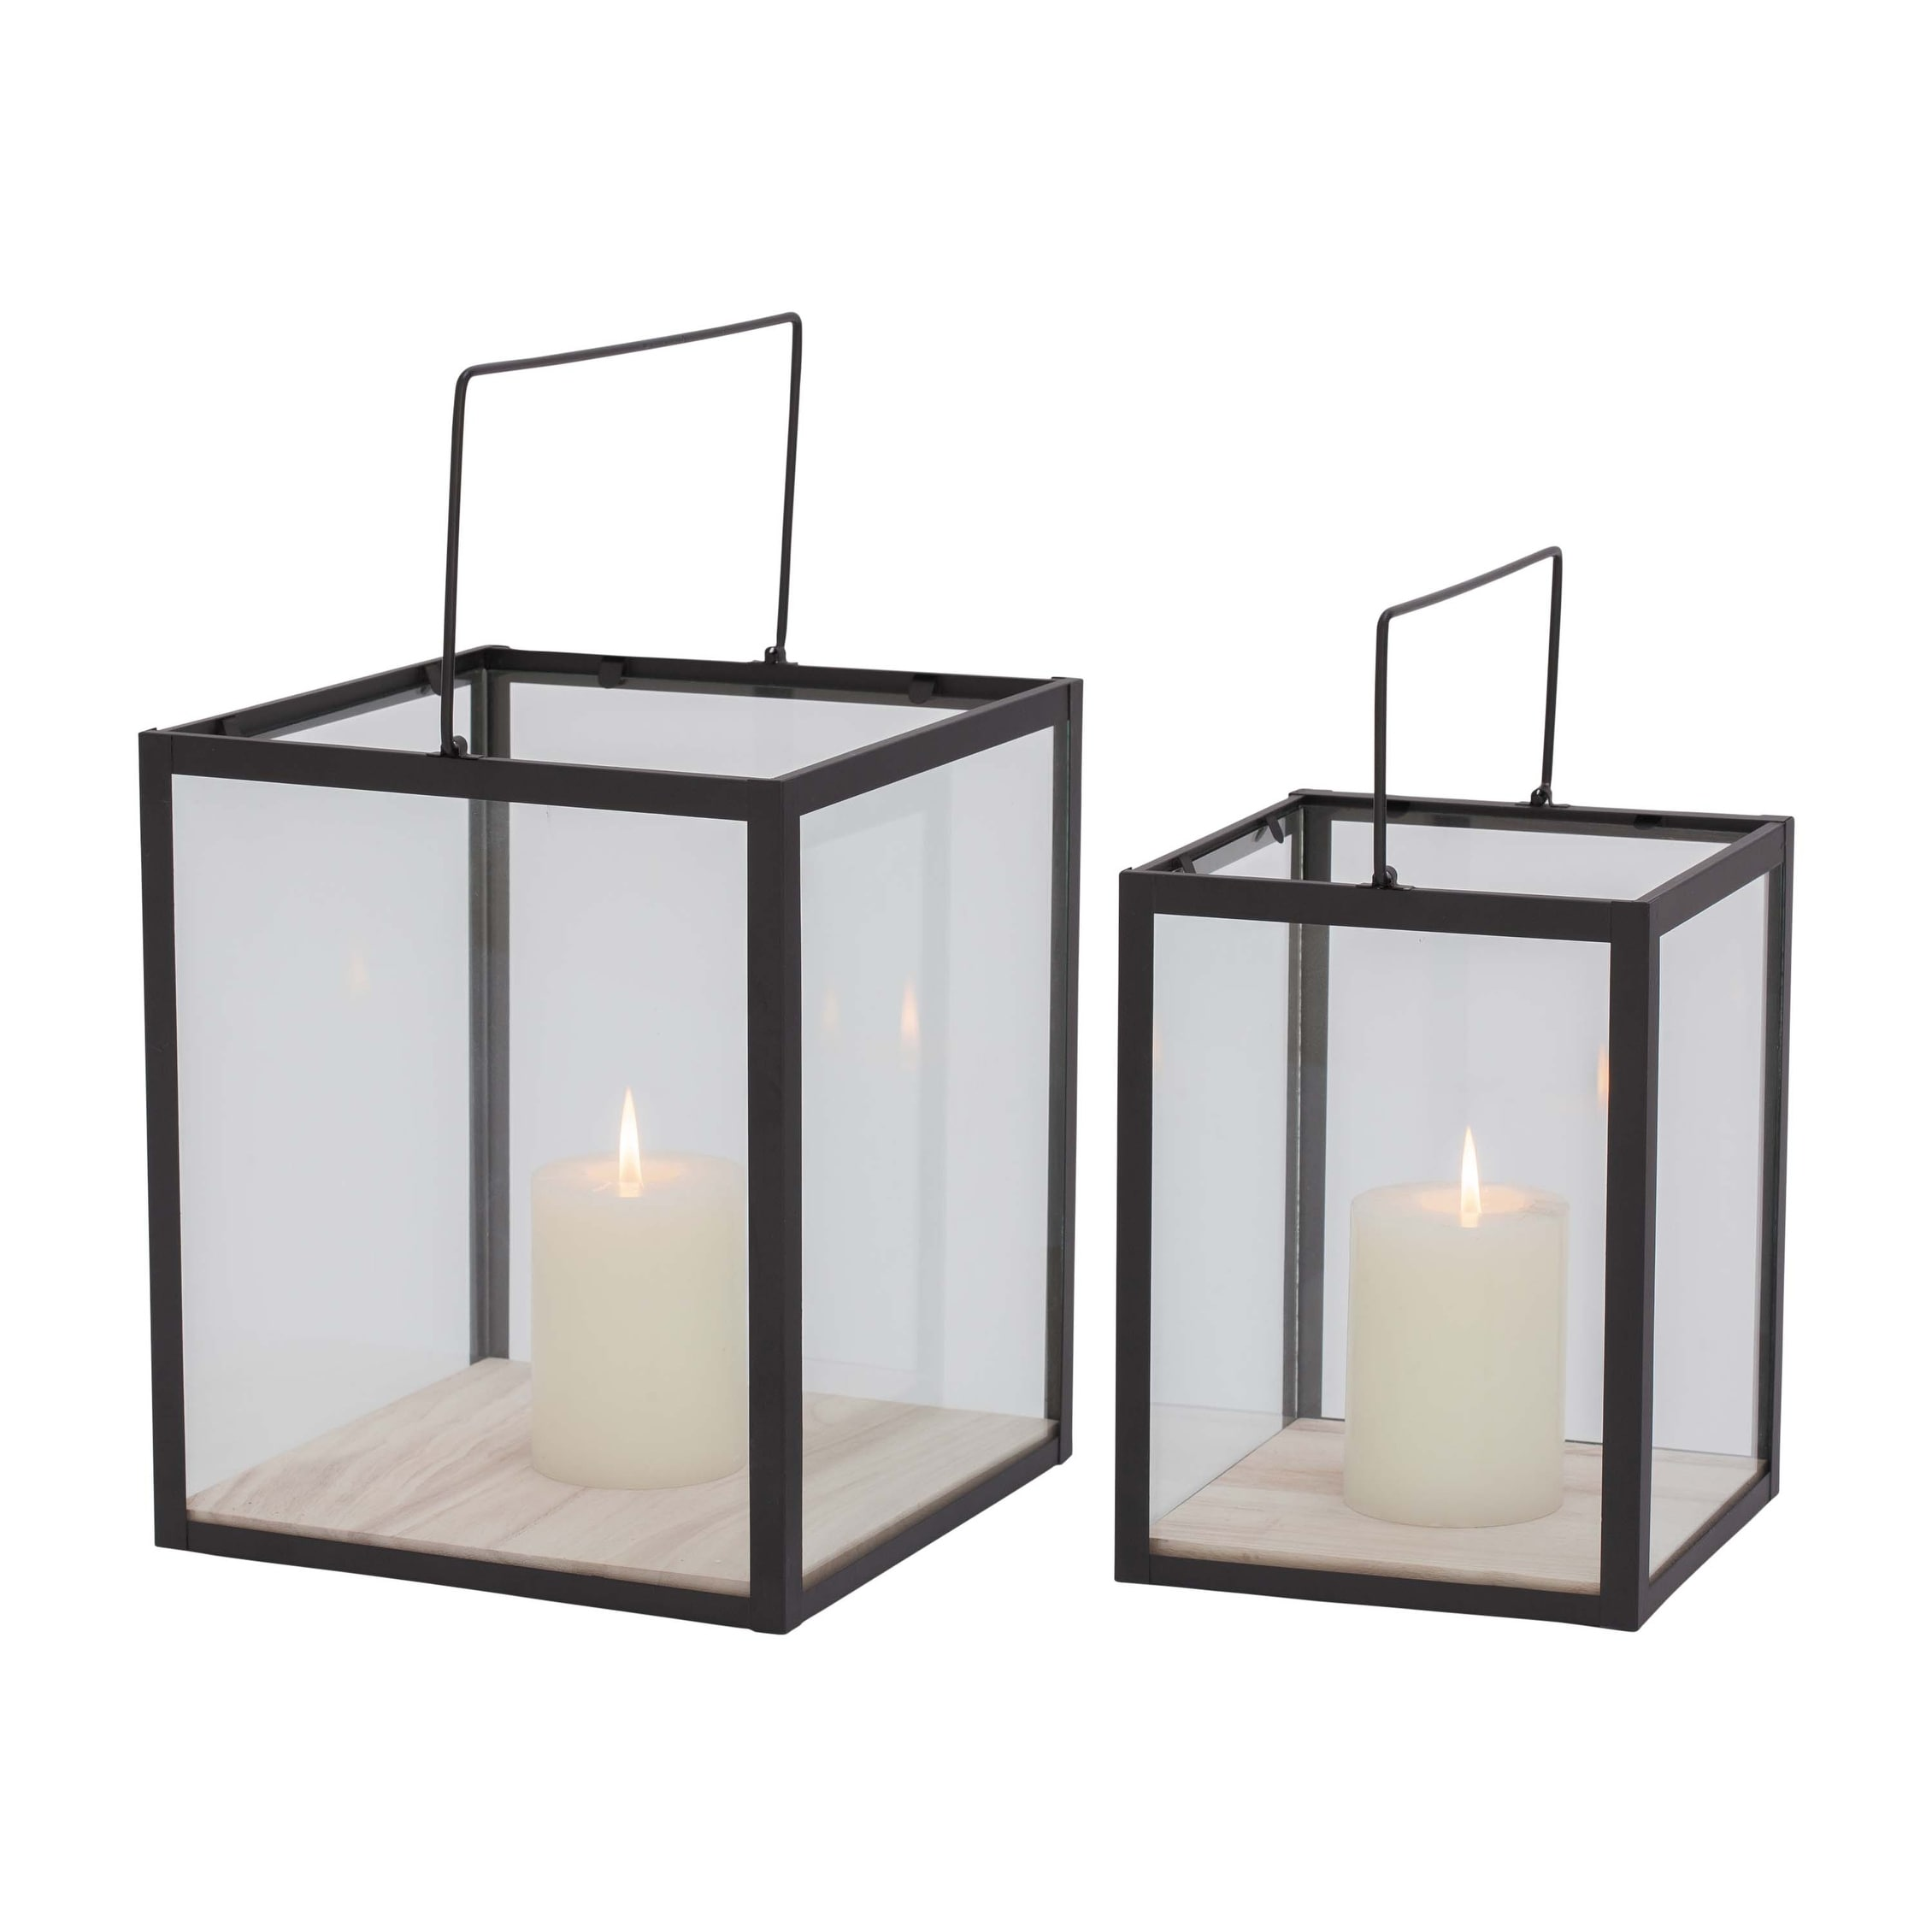 2 Piece Square Metal Frame Glass Candle Lantern Set Black Overstock 16941278